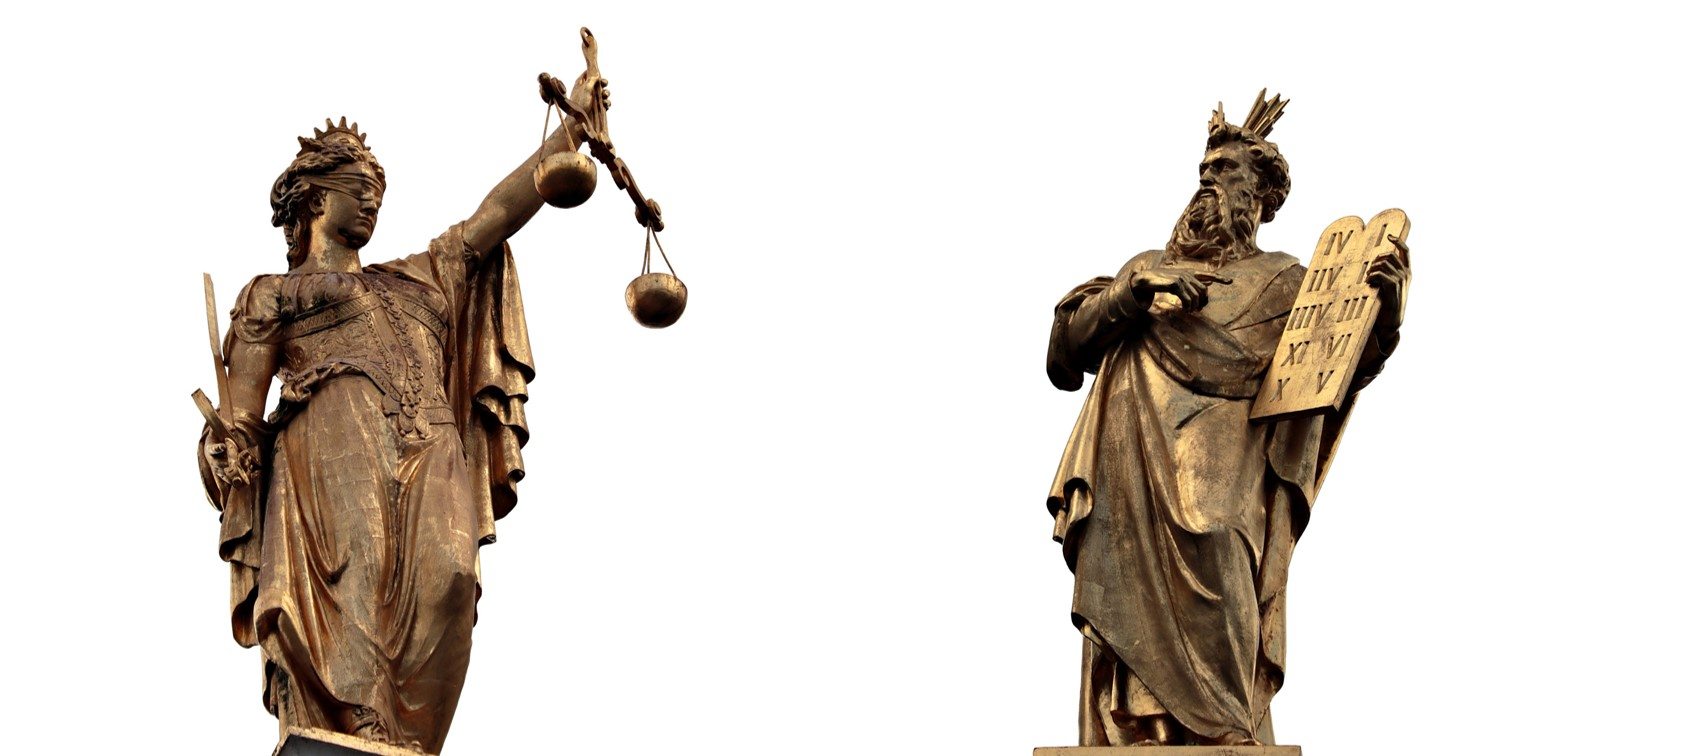 Golden statue of justice and law